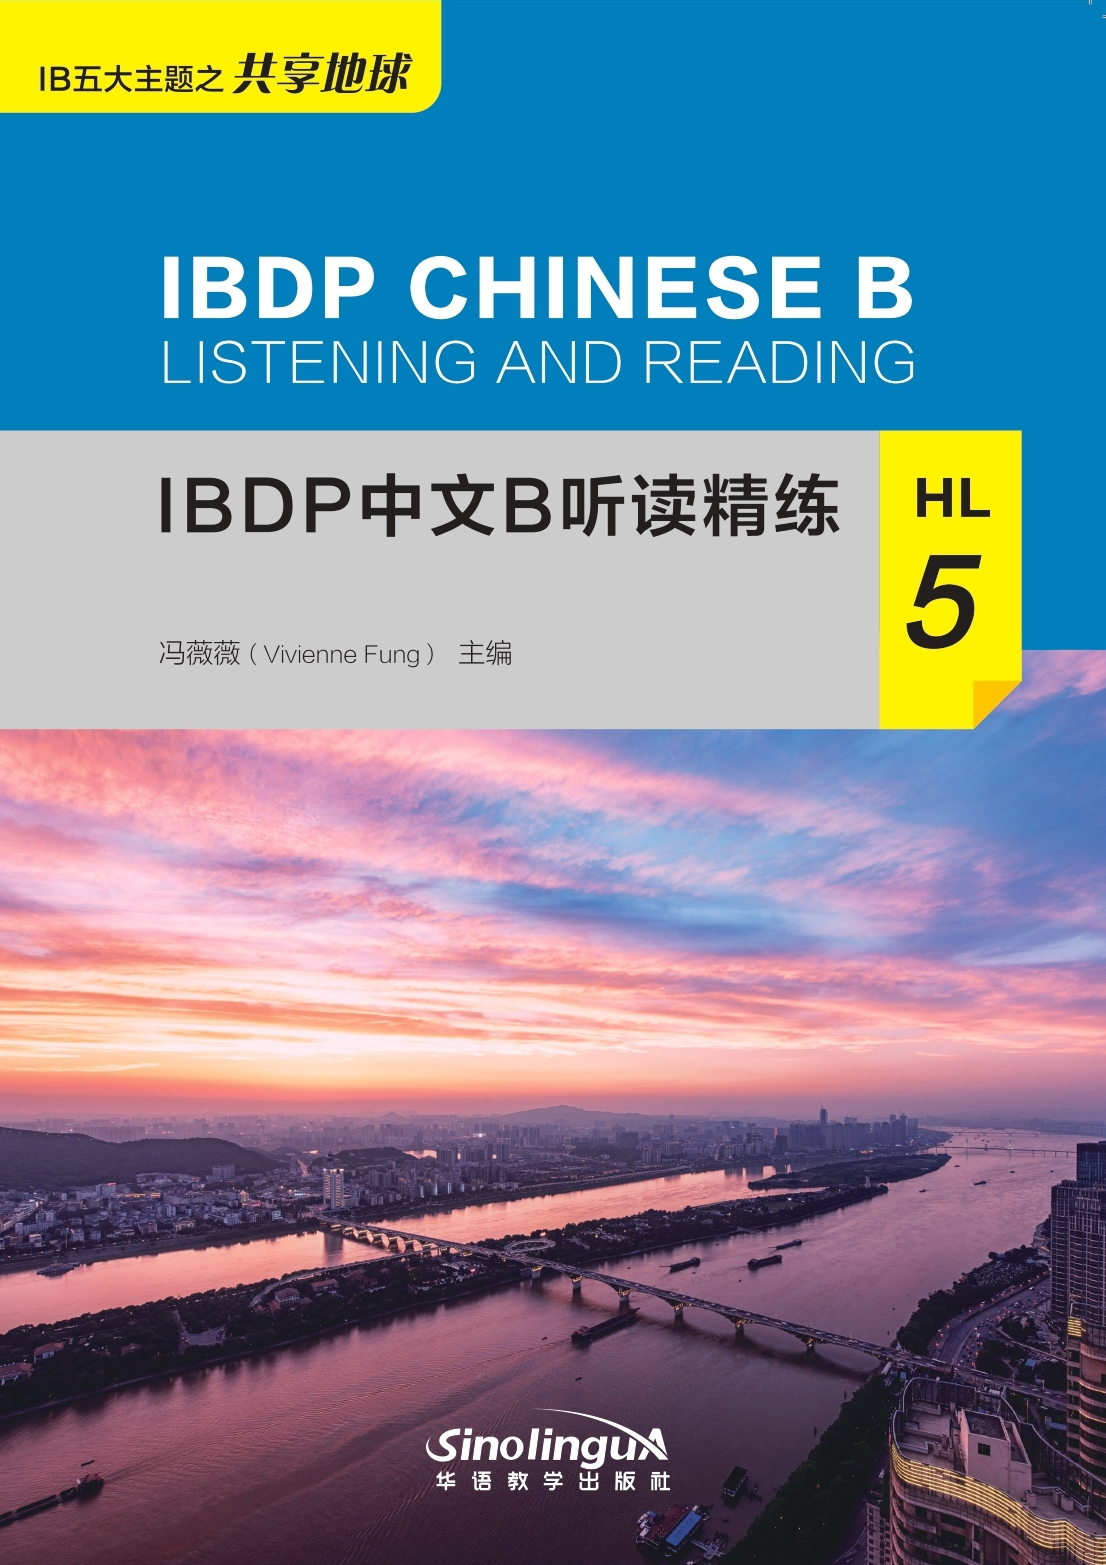 IBDP Chinese B Listening and Reading ·HL·5